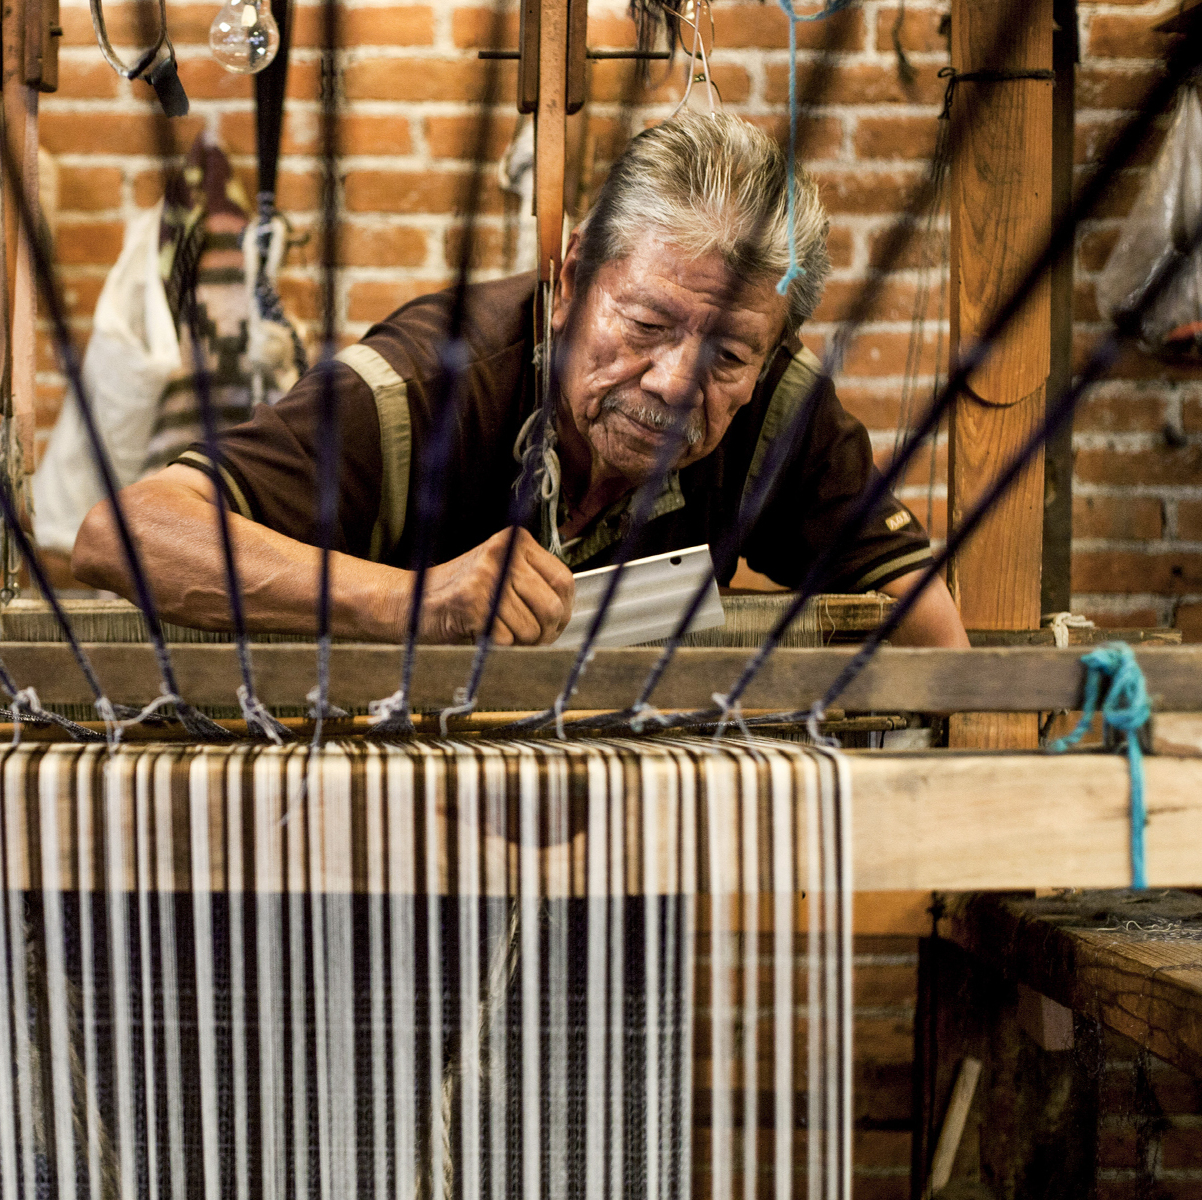 Enrique Antonio Tinoco Jaimes crafts a rebozo on a traditional loom in the rebozo workshop of Don Fermín Escobar in Tenancingo, Mexico. At right, a detail from a rebozo.